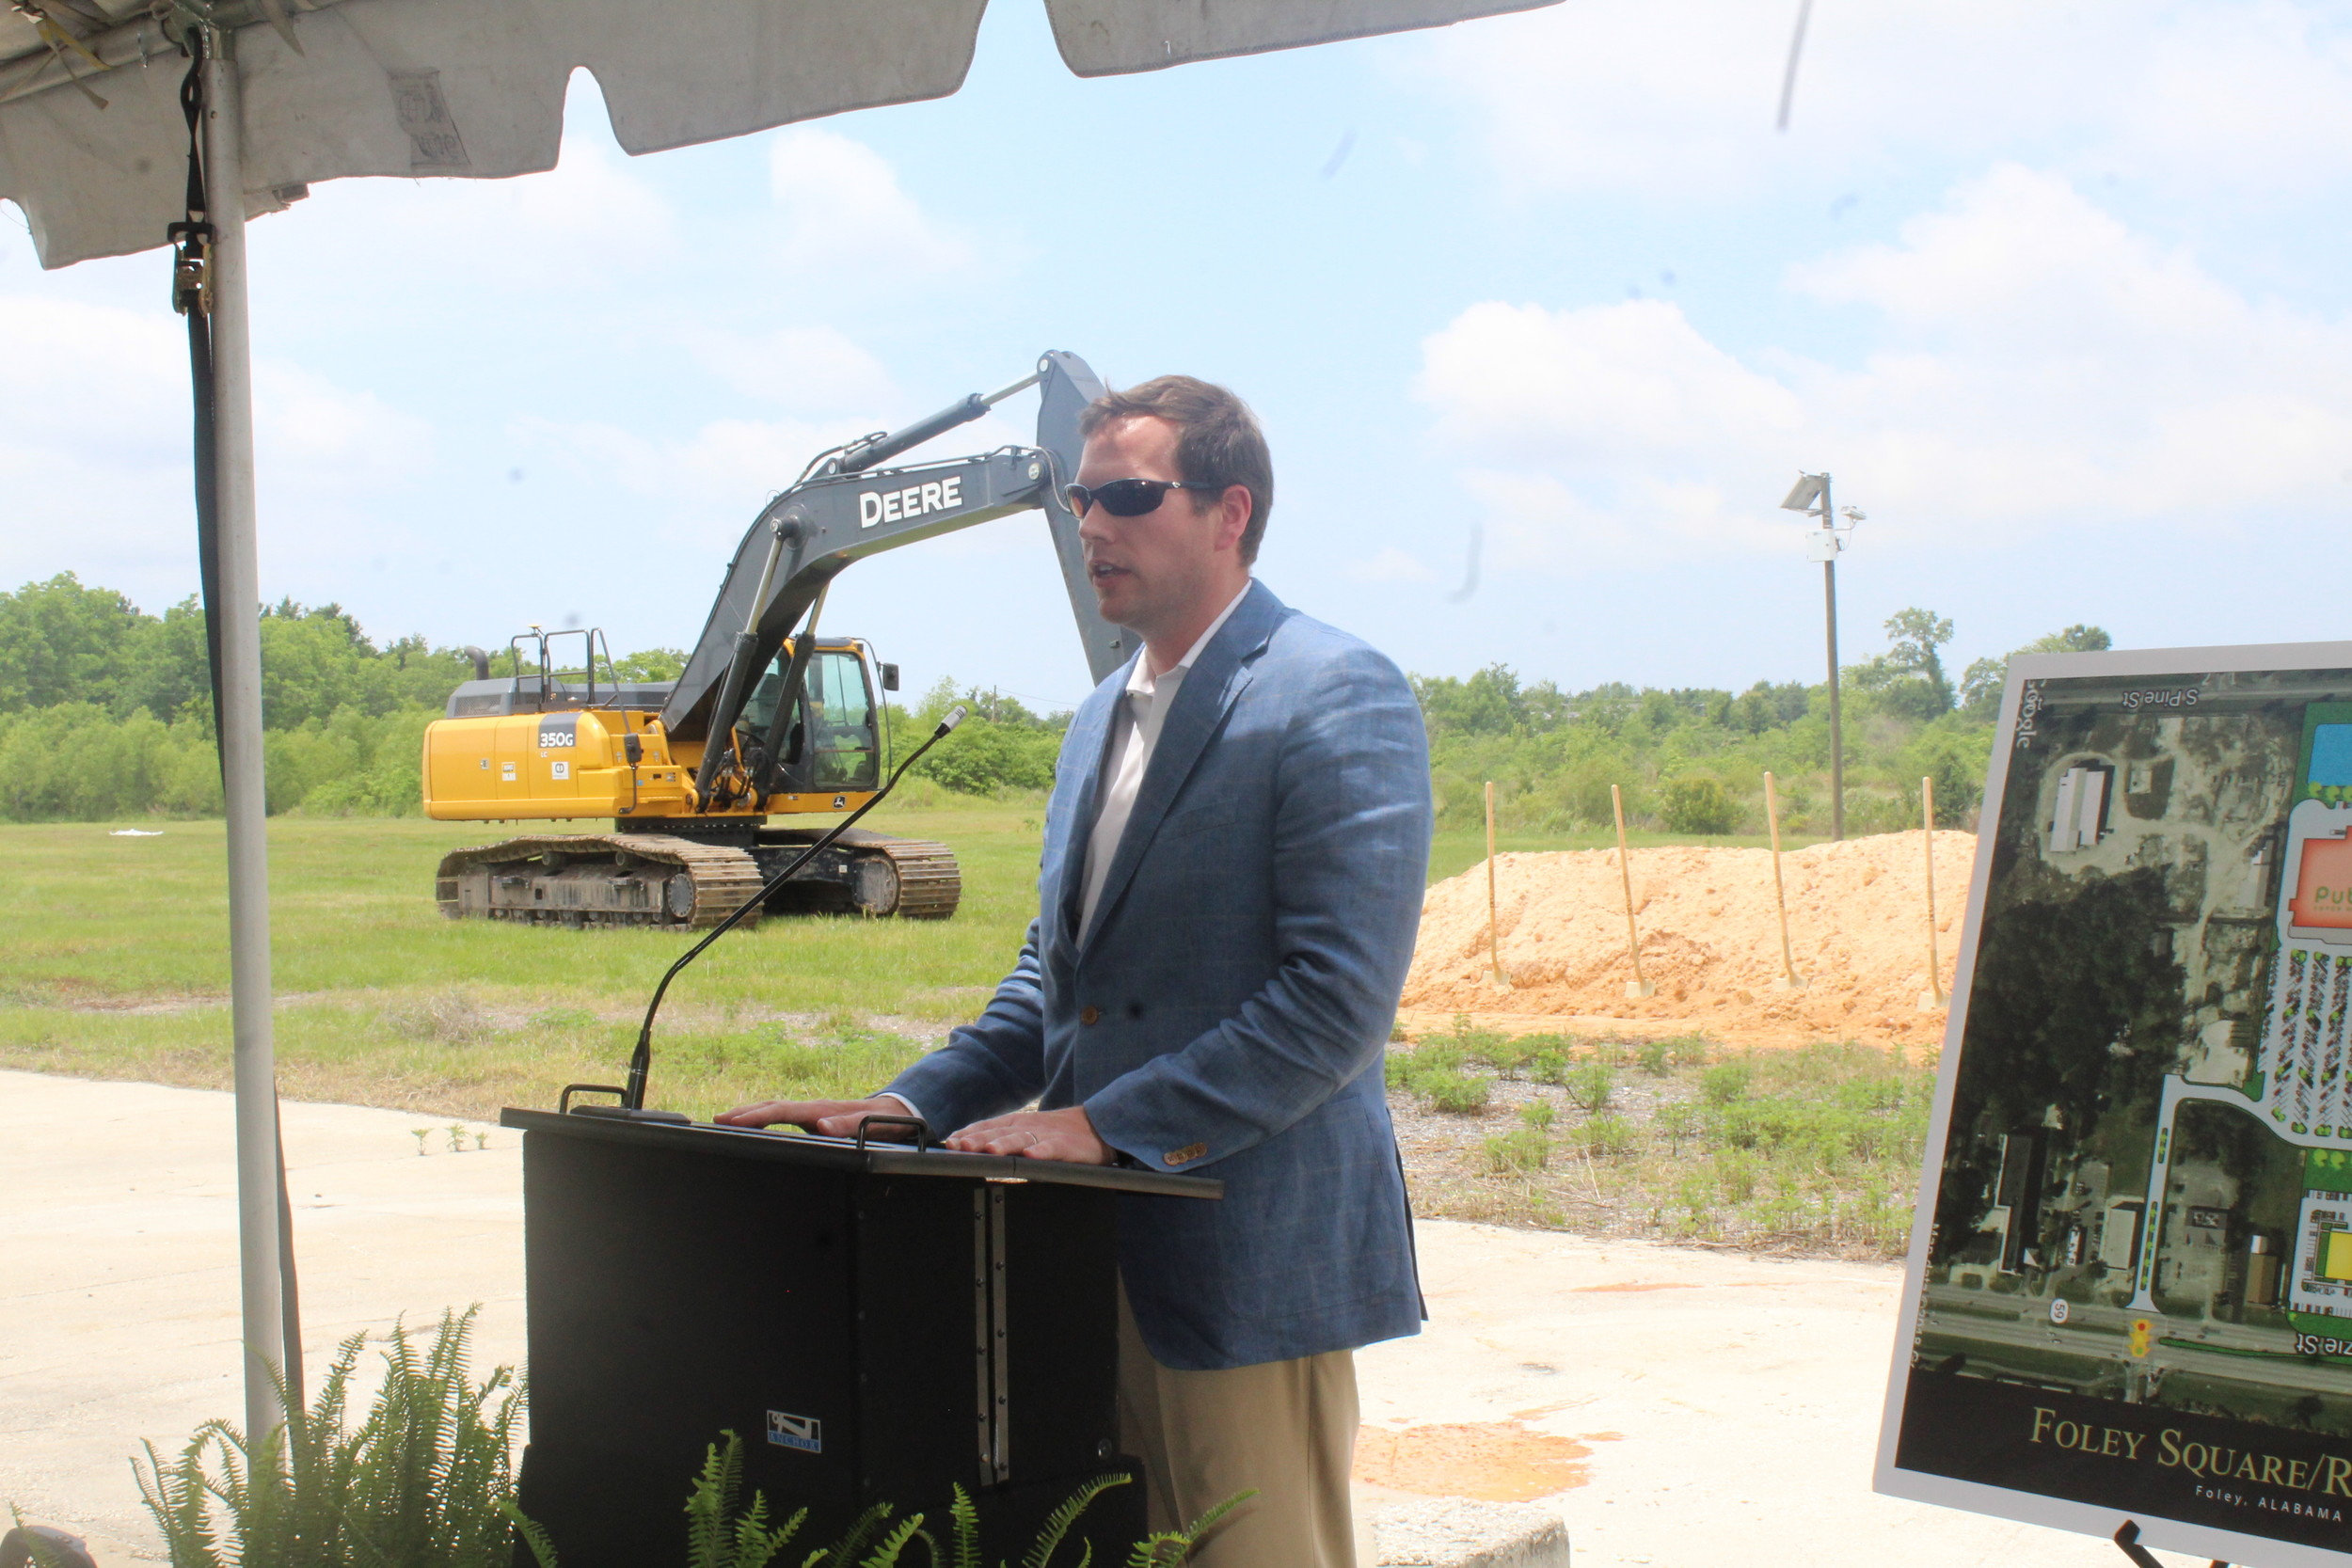 Philip Burton, president and CEO of Burton Property Group, said a few words before the groundbreaking.